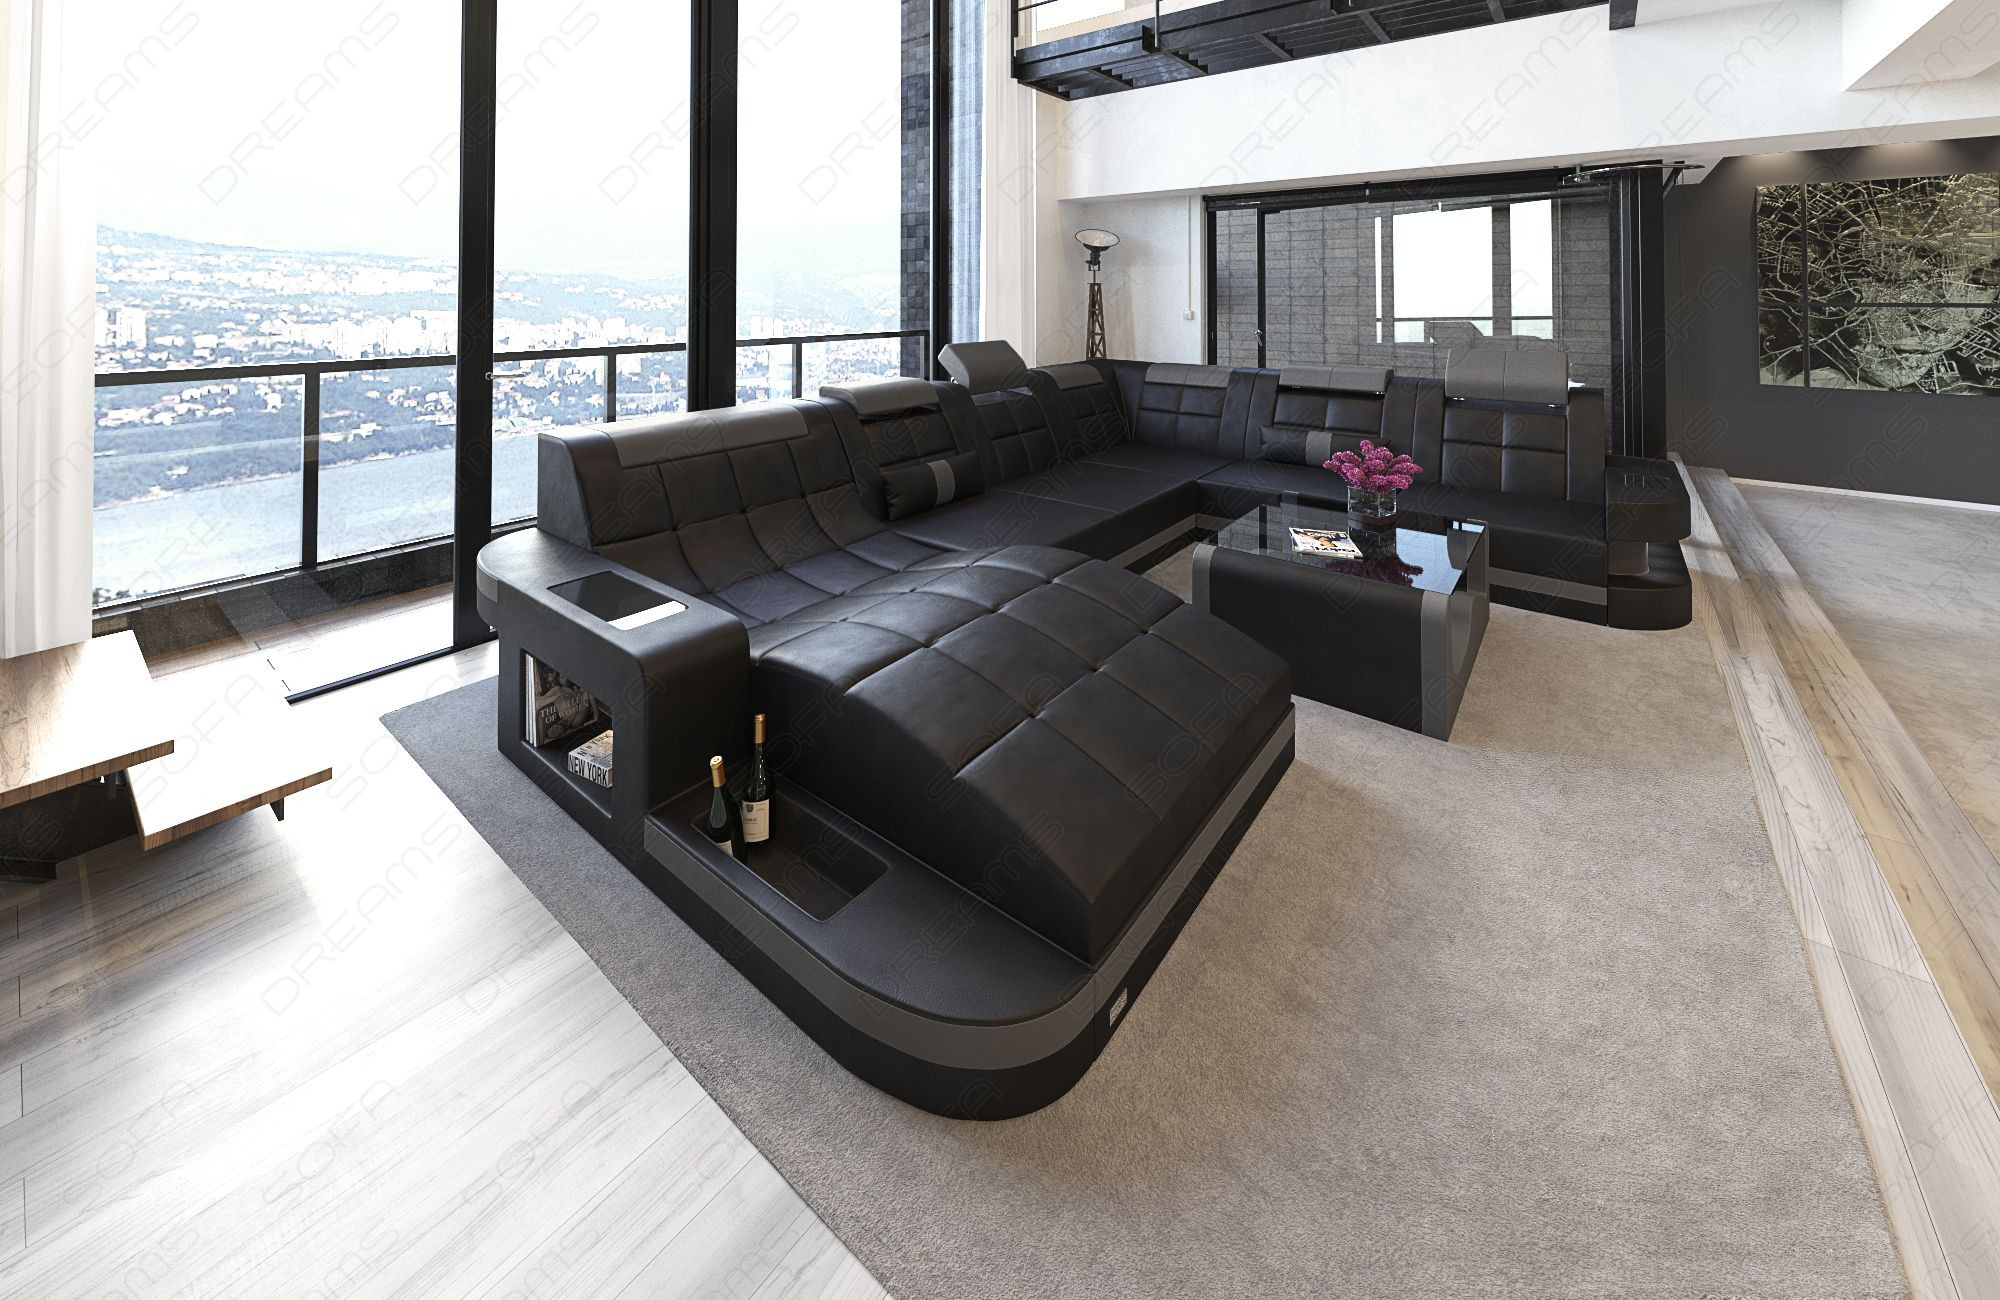 Design Sectional Leather Sofa with LED lighting black-grey